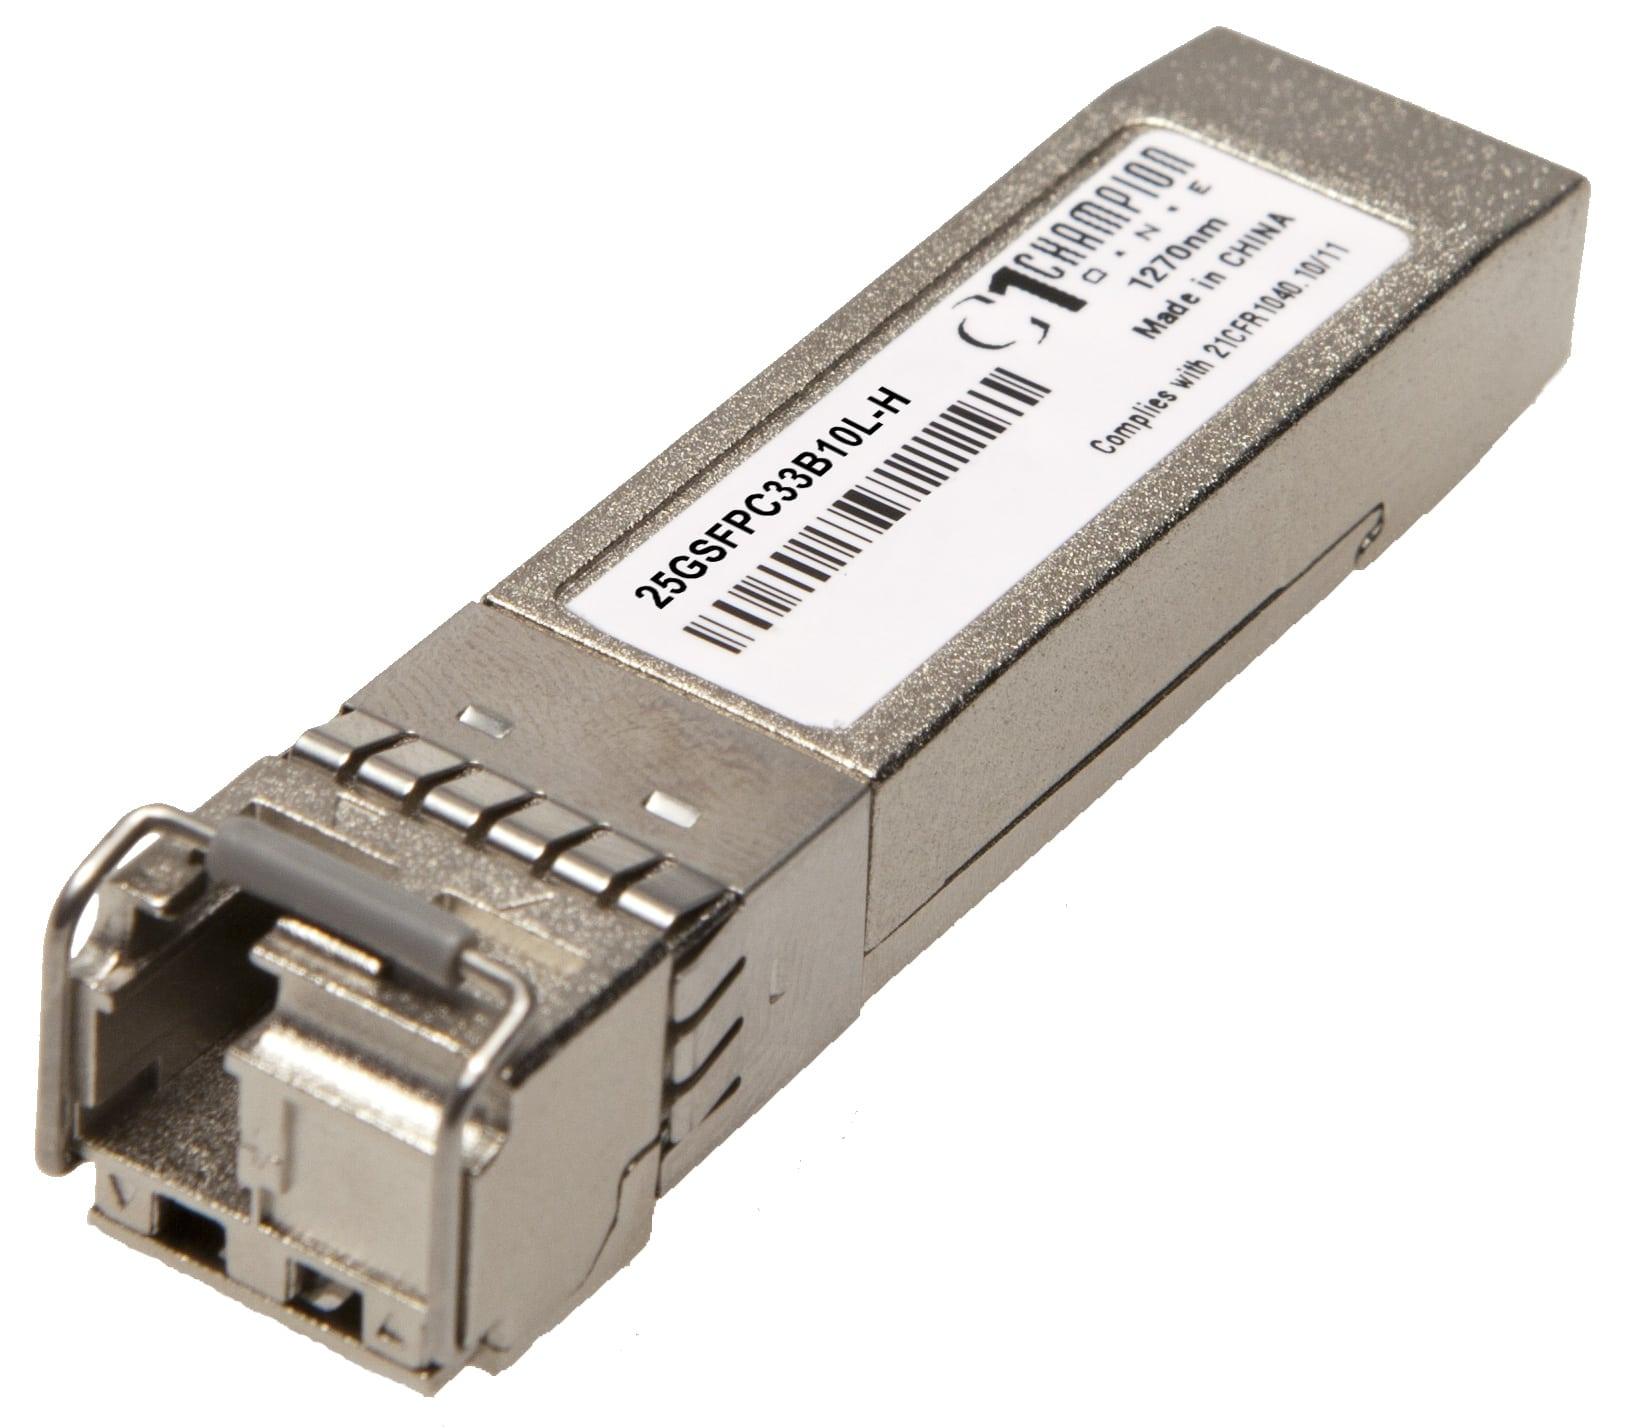 Single-Fiber 25G CPRI (option 10) SFP28 SMF 10km Hardened 1330Tx/1270Rx